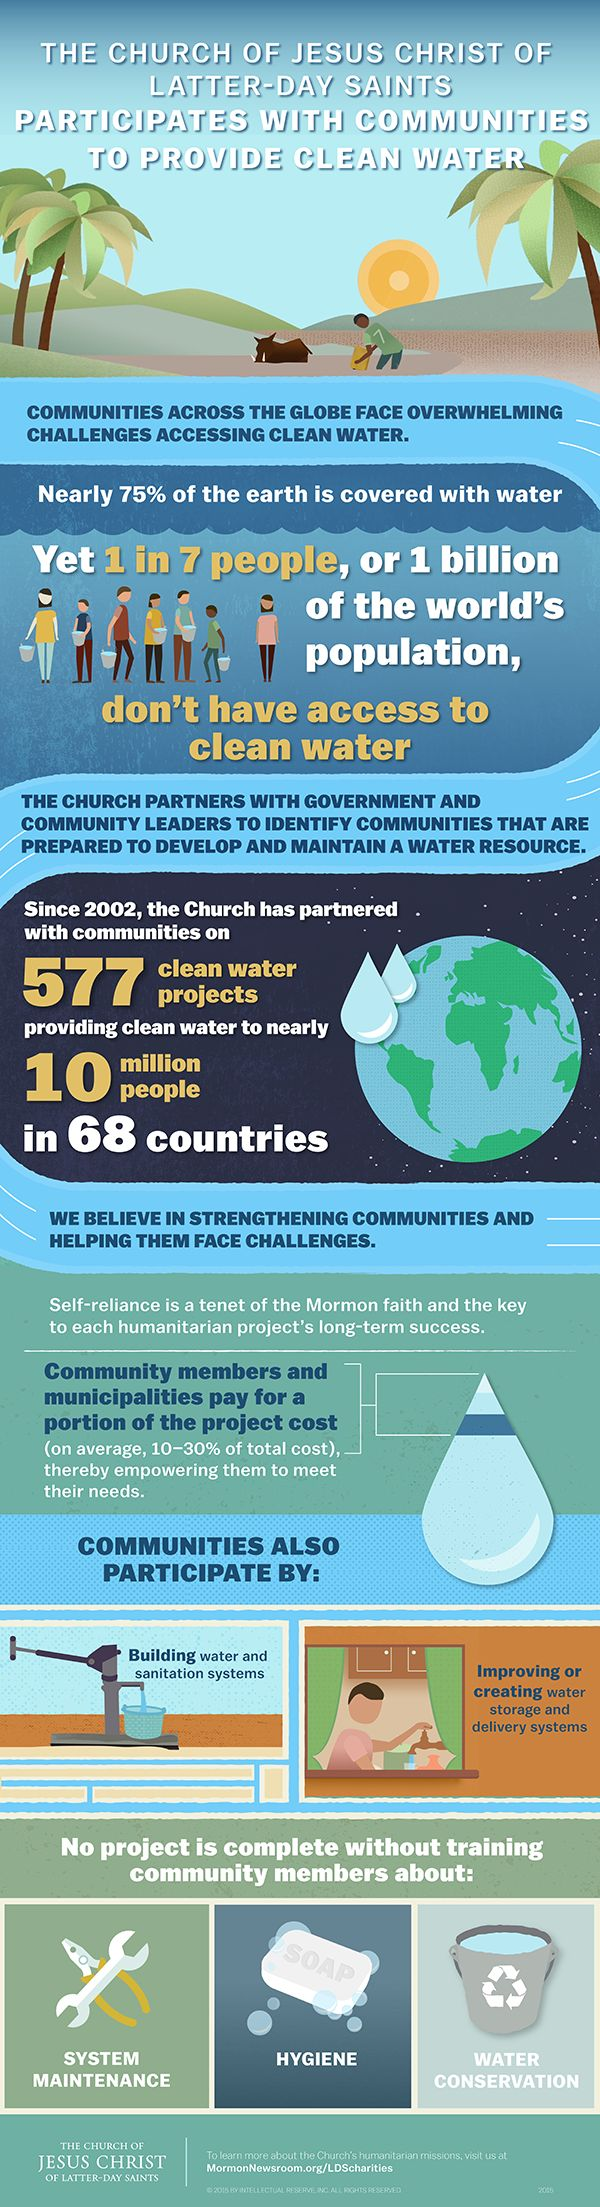 LDS Charities Clean Water Program The Church of Jesus Christ of Latter-day Saints